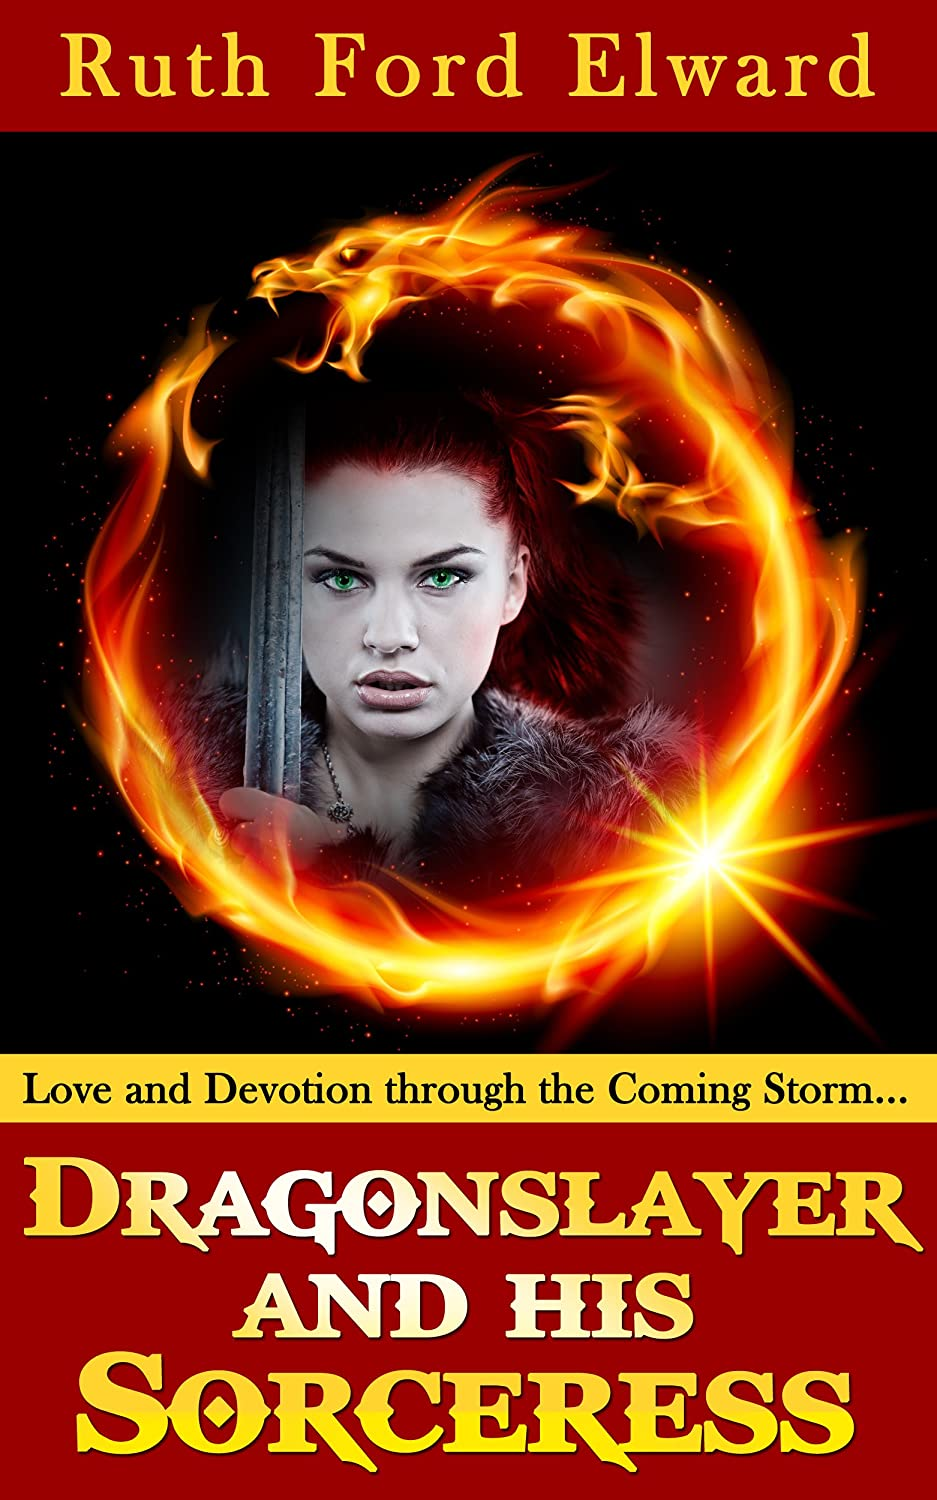 CC-2-Dragonslayer-and-His-Sorceress-1562x25001